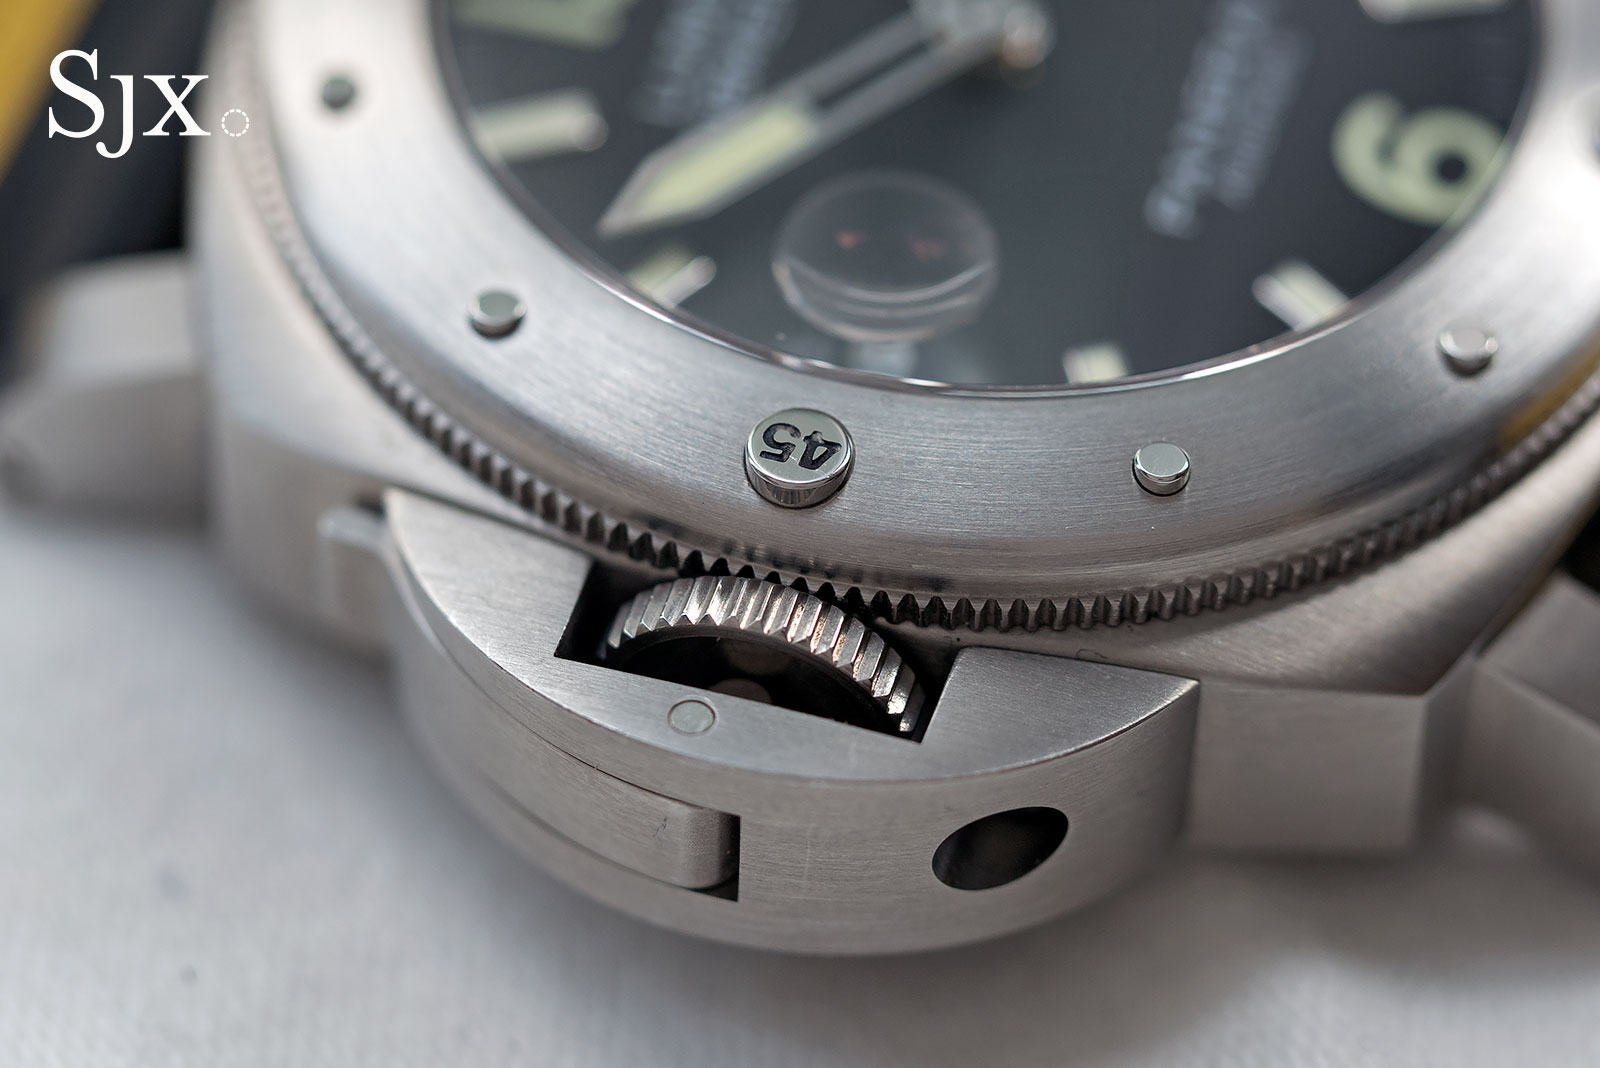 Panerai Submersible Destro Chronopassion PAM239-3